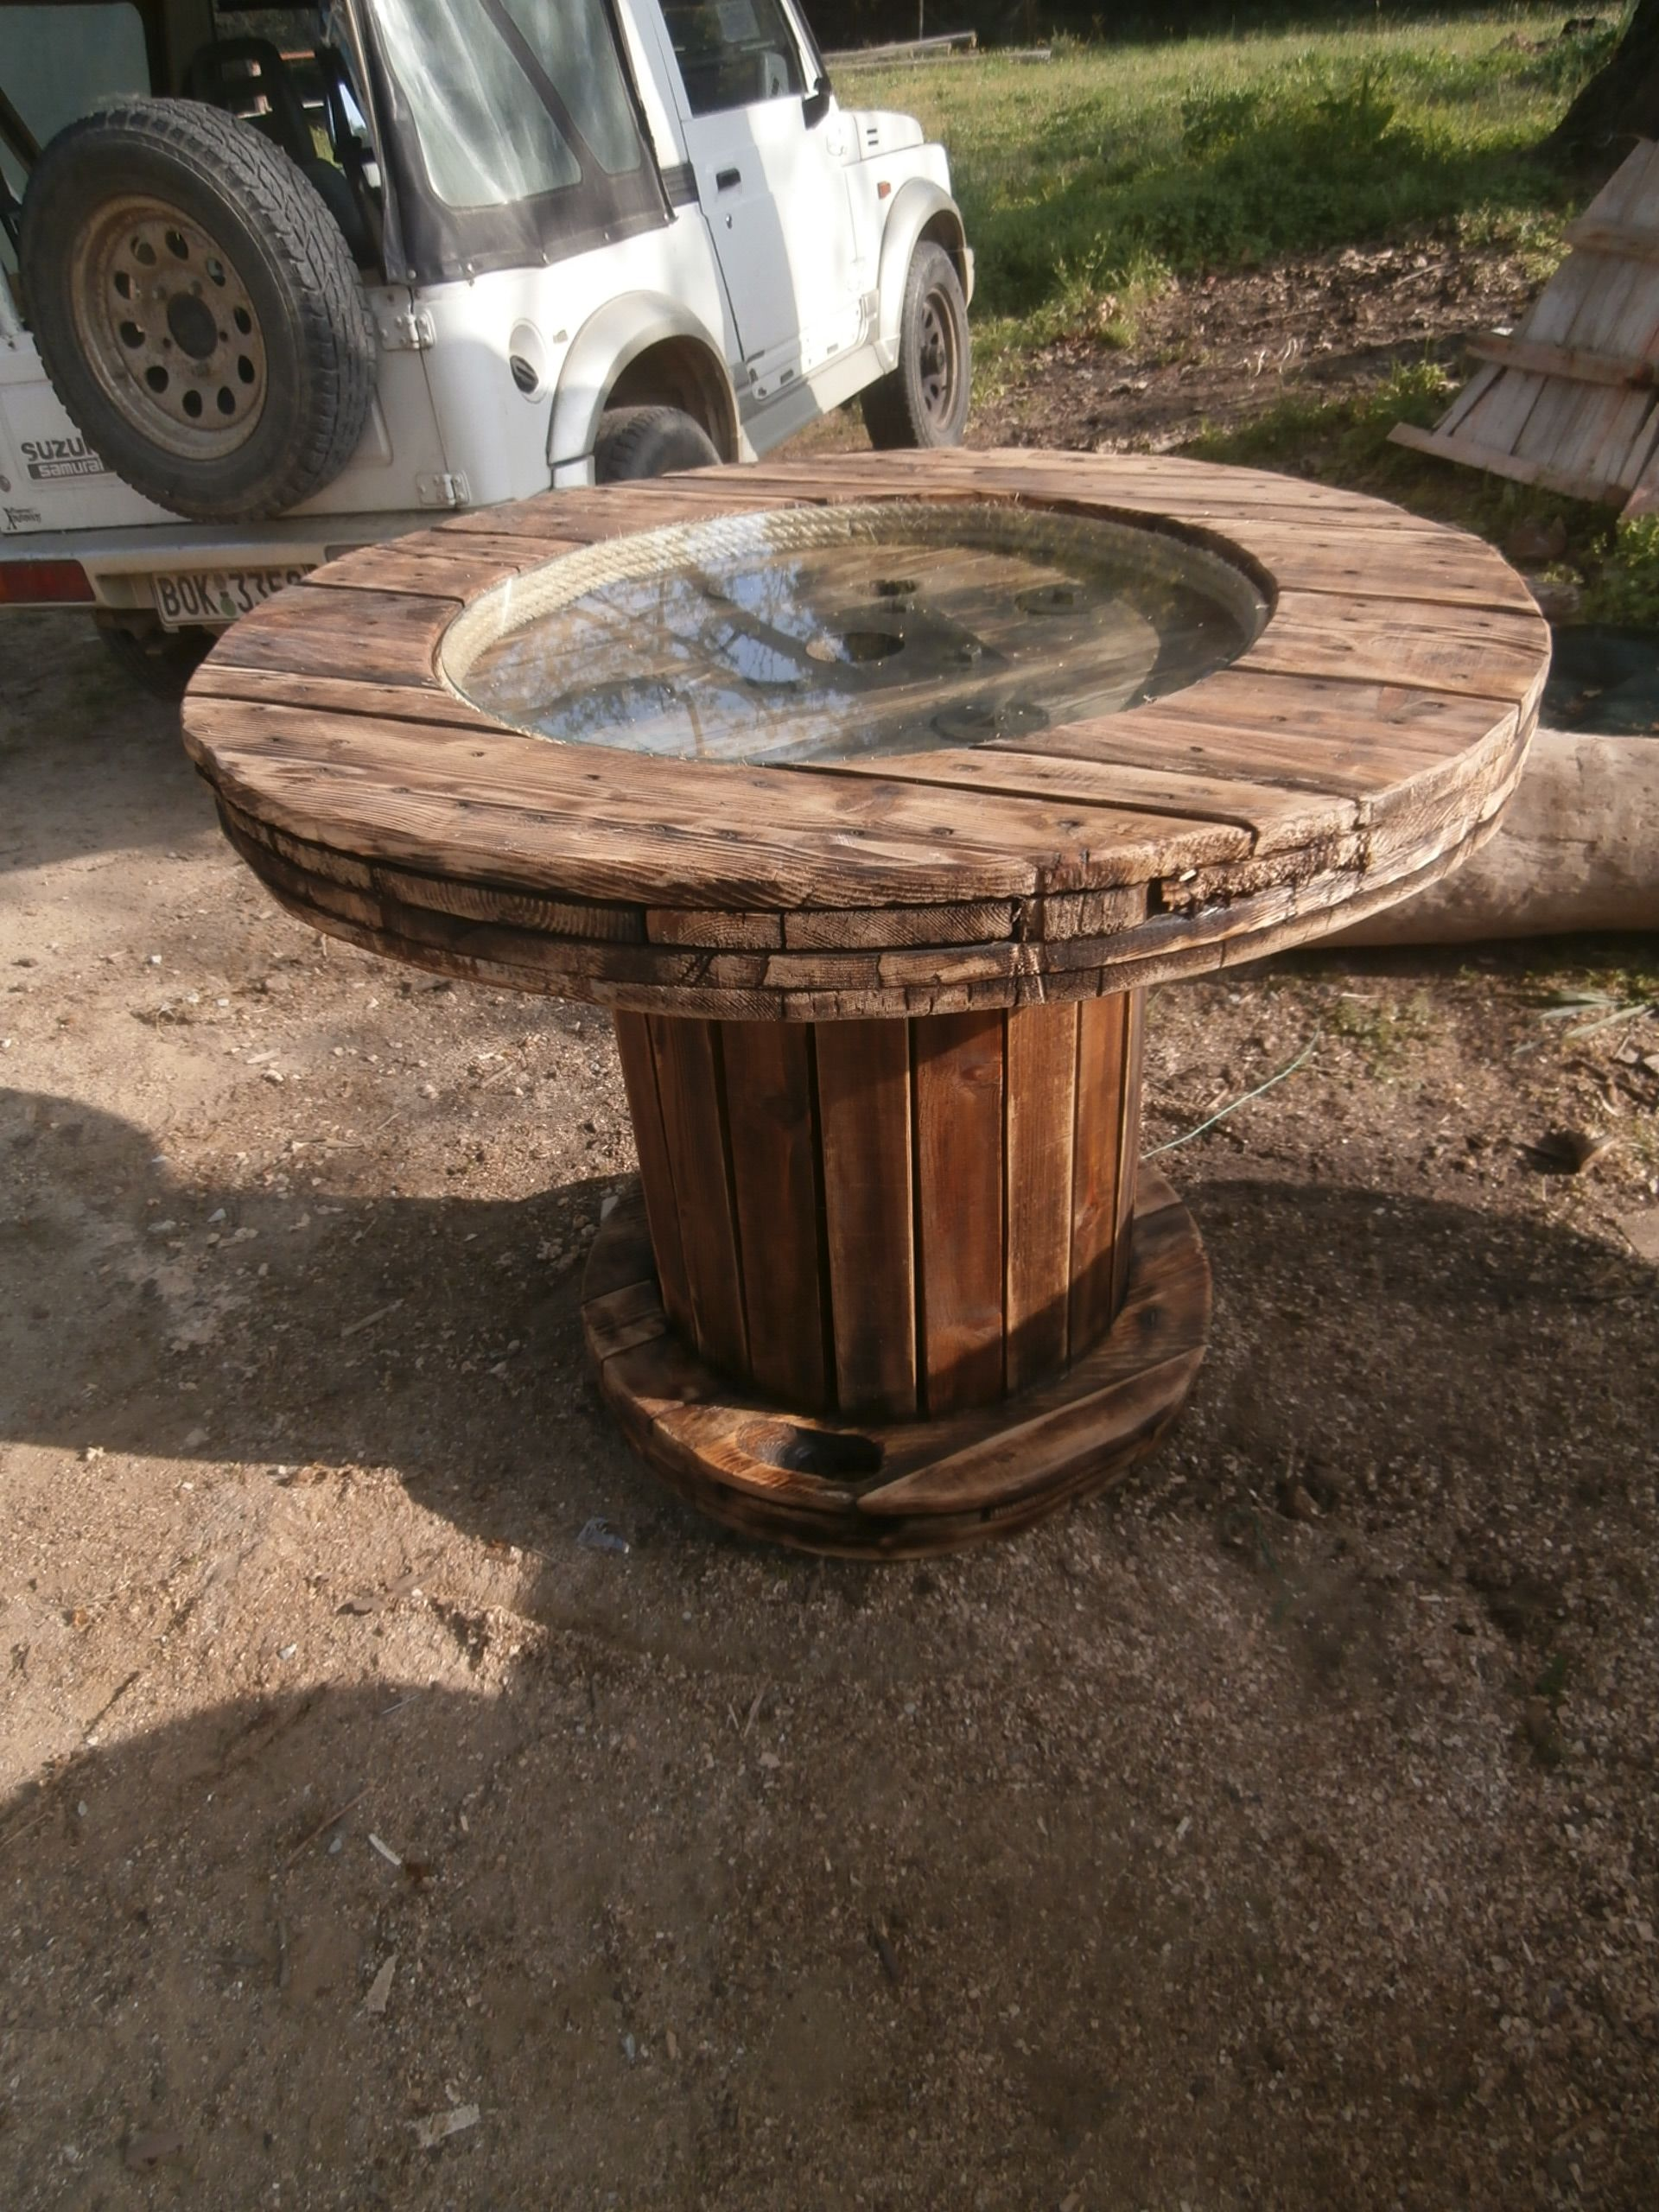 Upcycled wooden cable reel made into a table